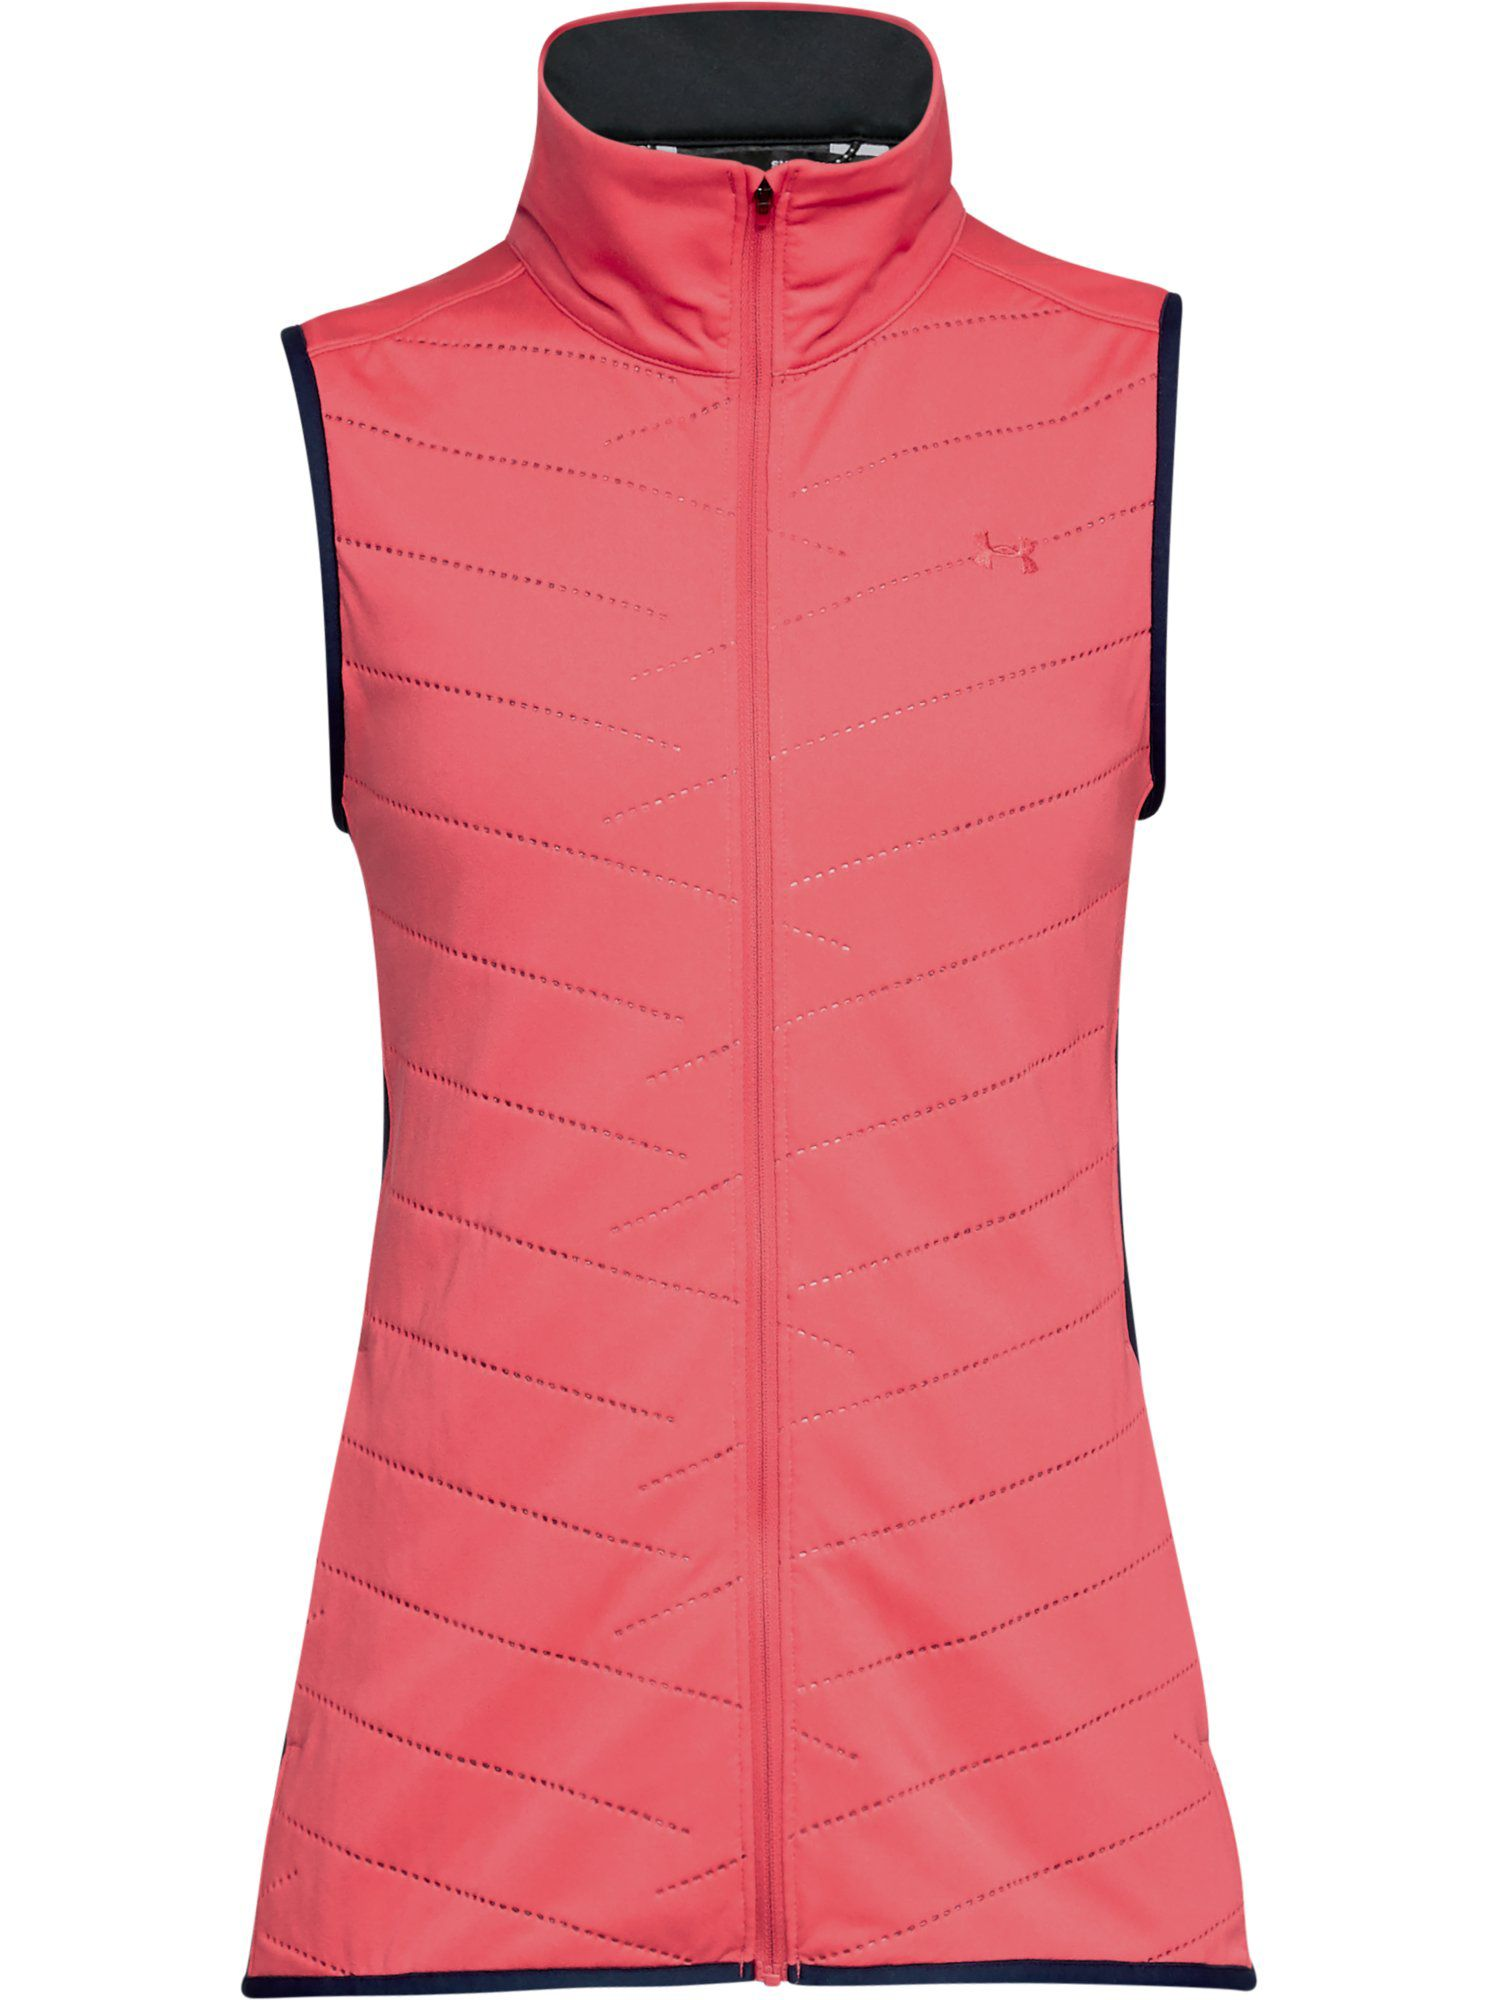 Under Armour 3G Reactor Gilet, Pink